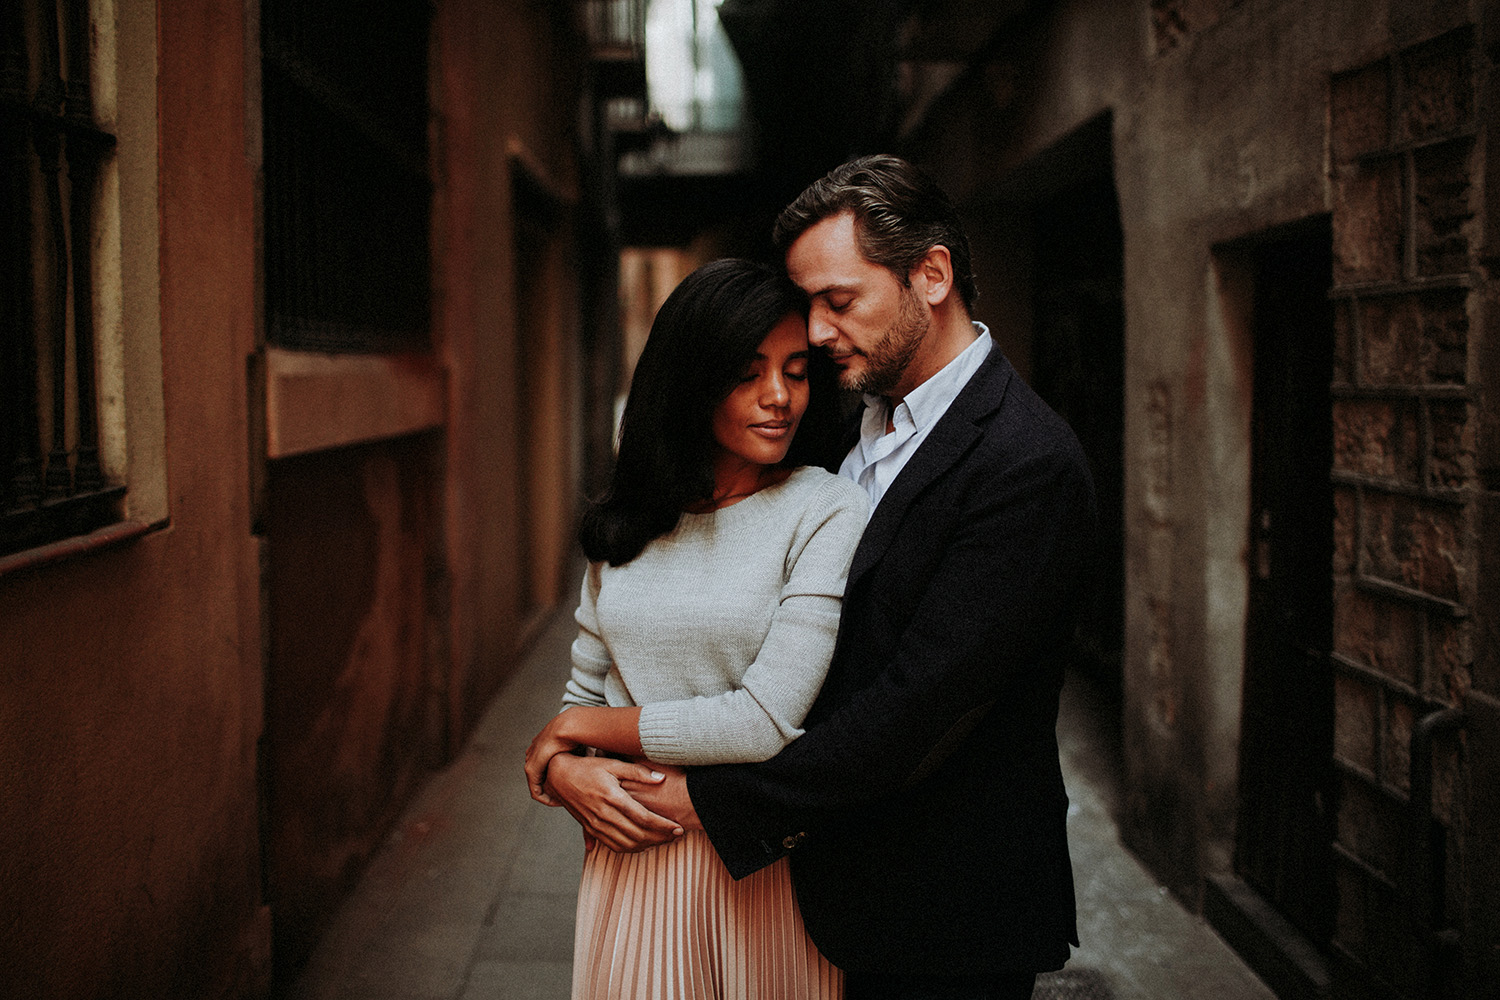 Copy of Copy of Copy of Copy of Copy of Copy of Copy of Copy of Copy of Copy of Copy of Copy of couple share intimate moment in the gothic quarter in Barcelona